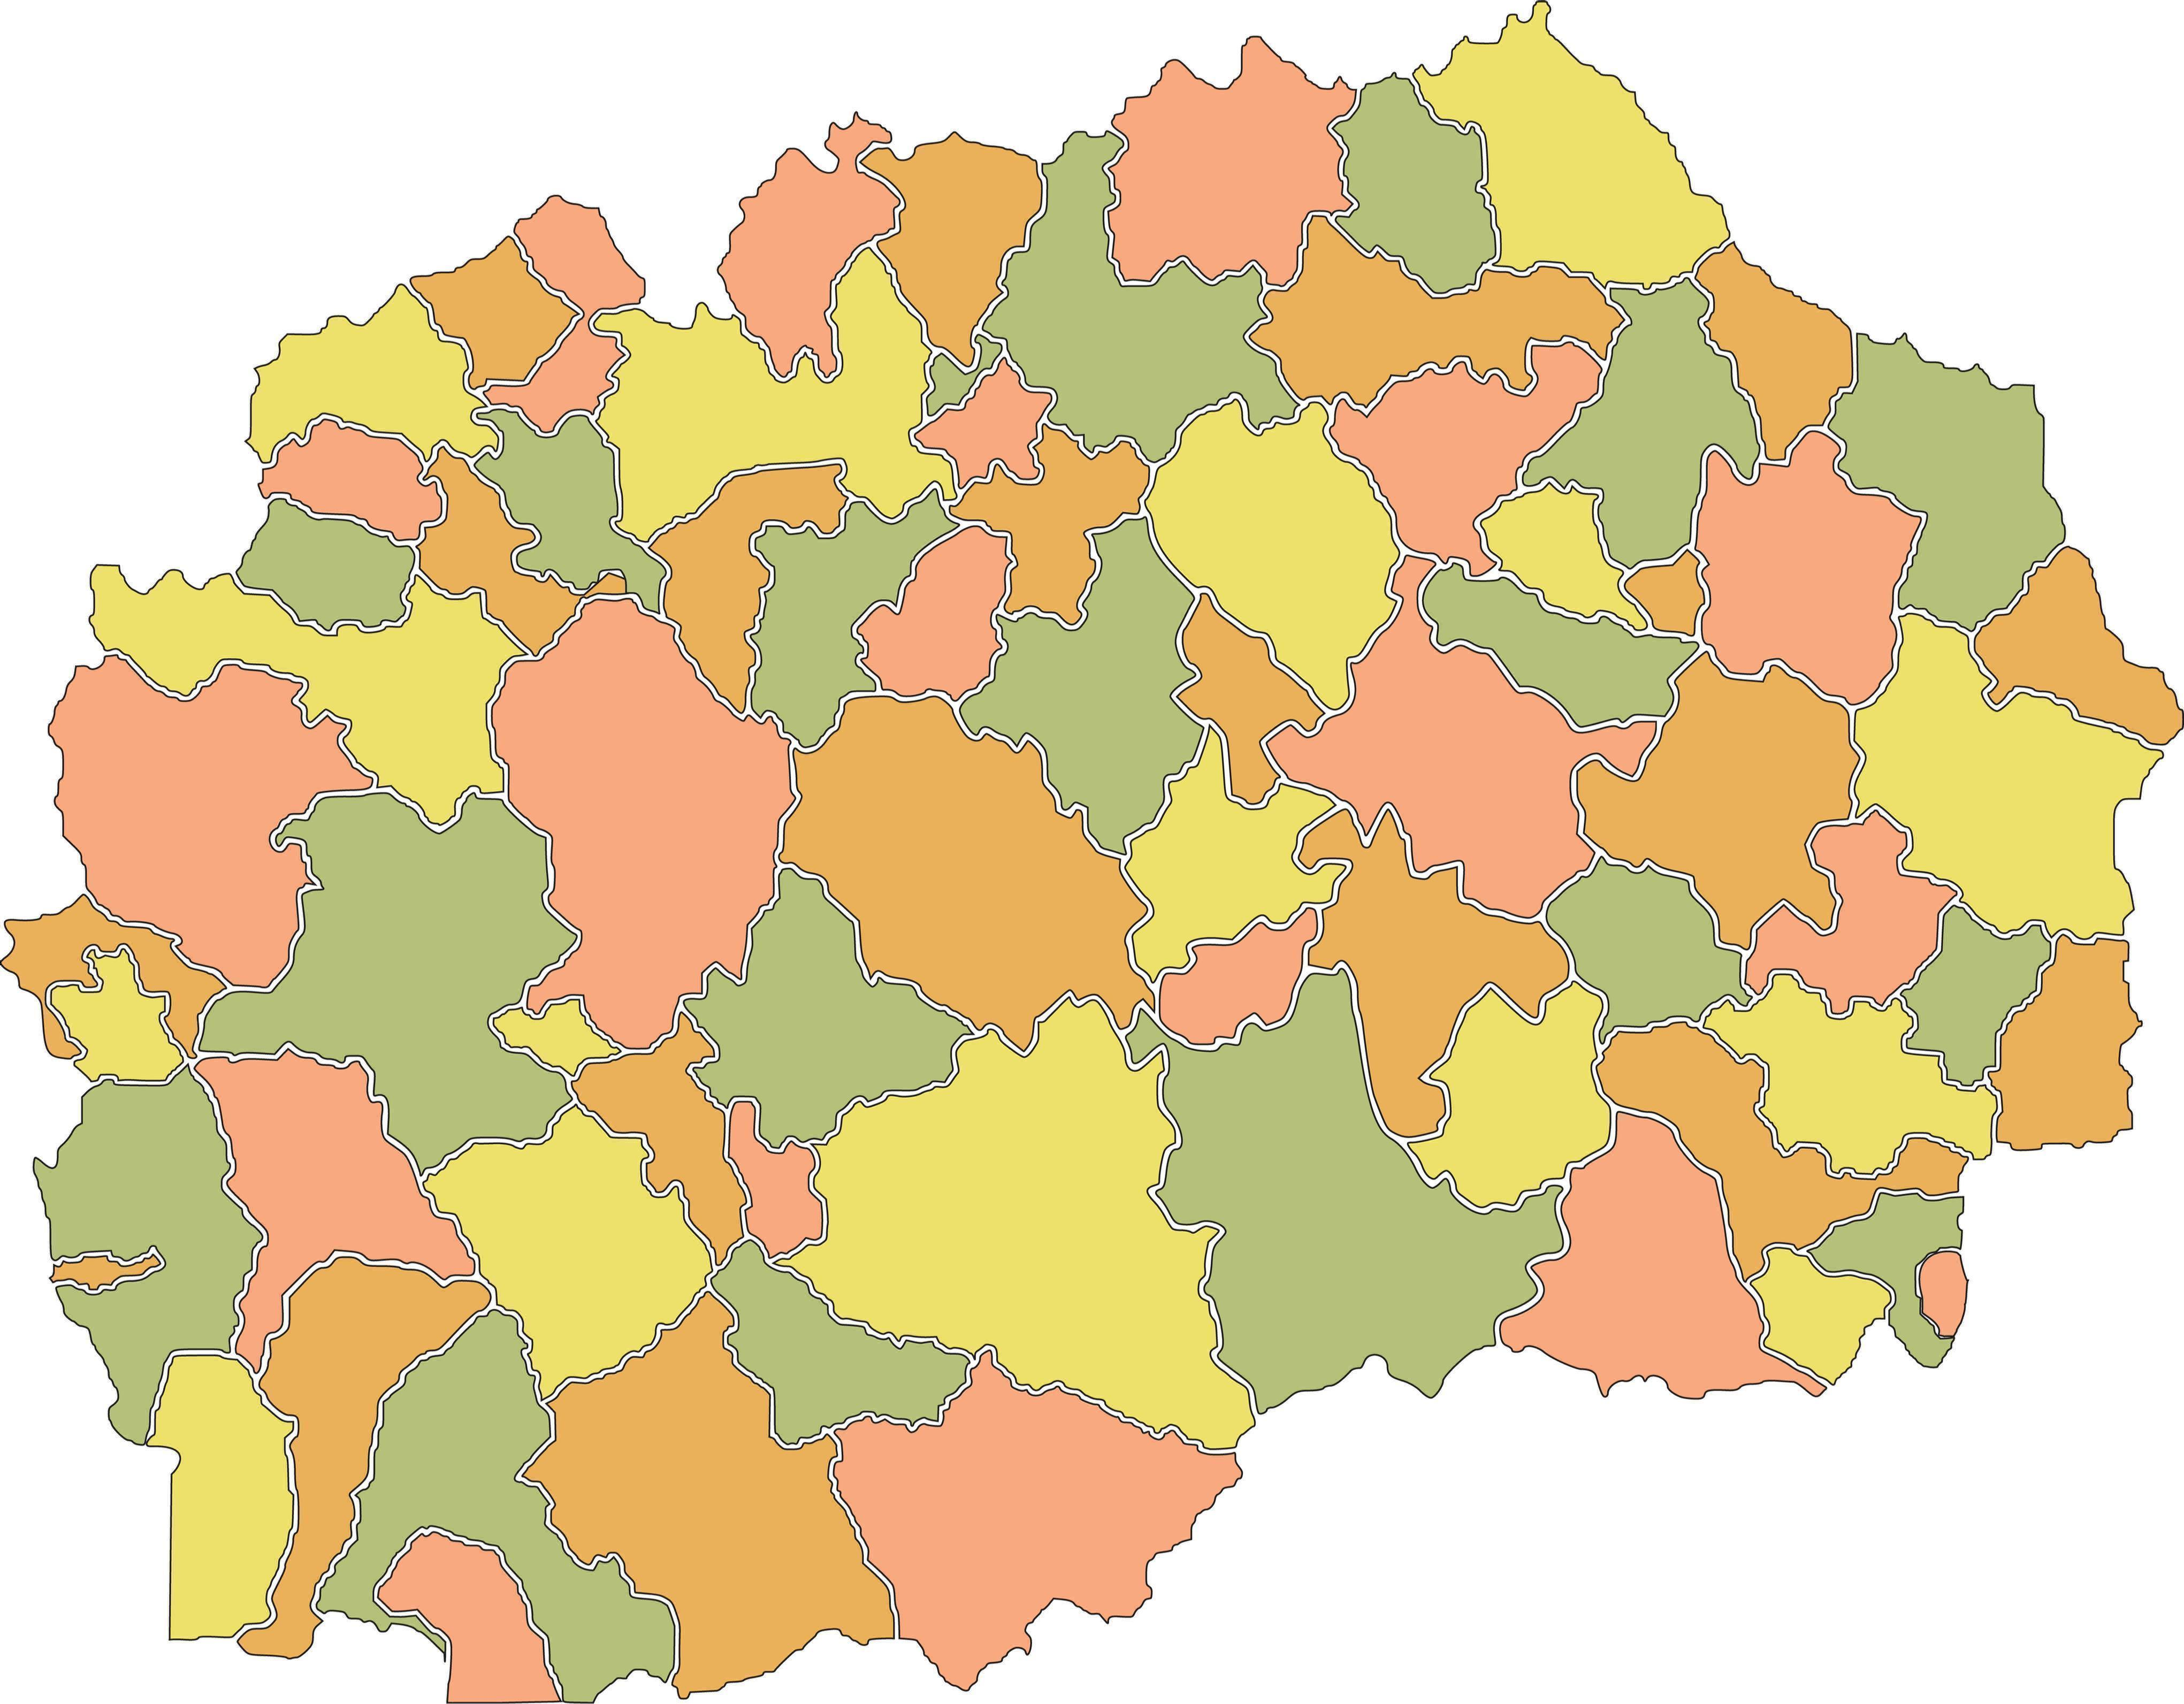 Political Map of North Macedonia showing its 80 municipalities and the capital city of Skopje